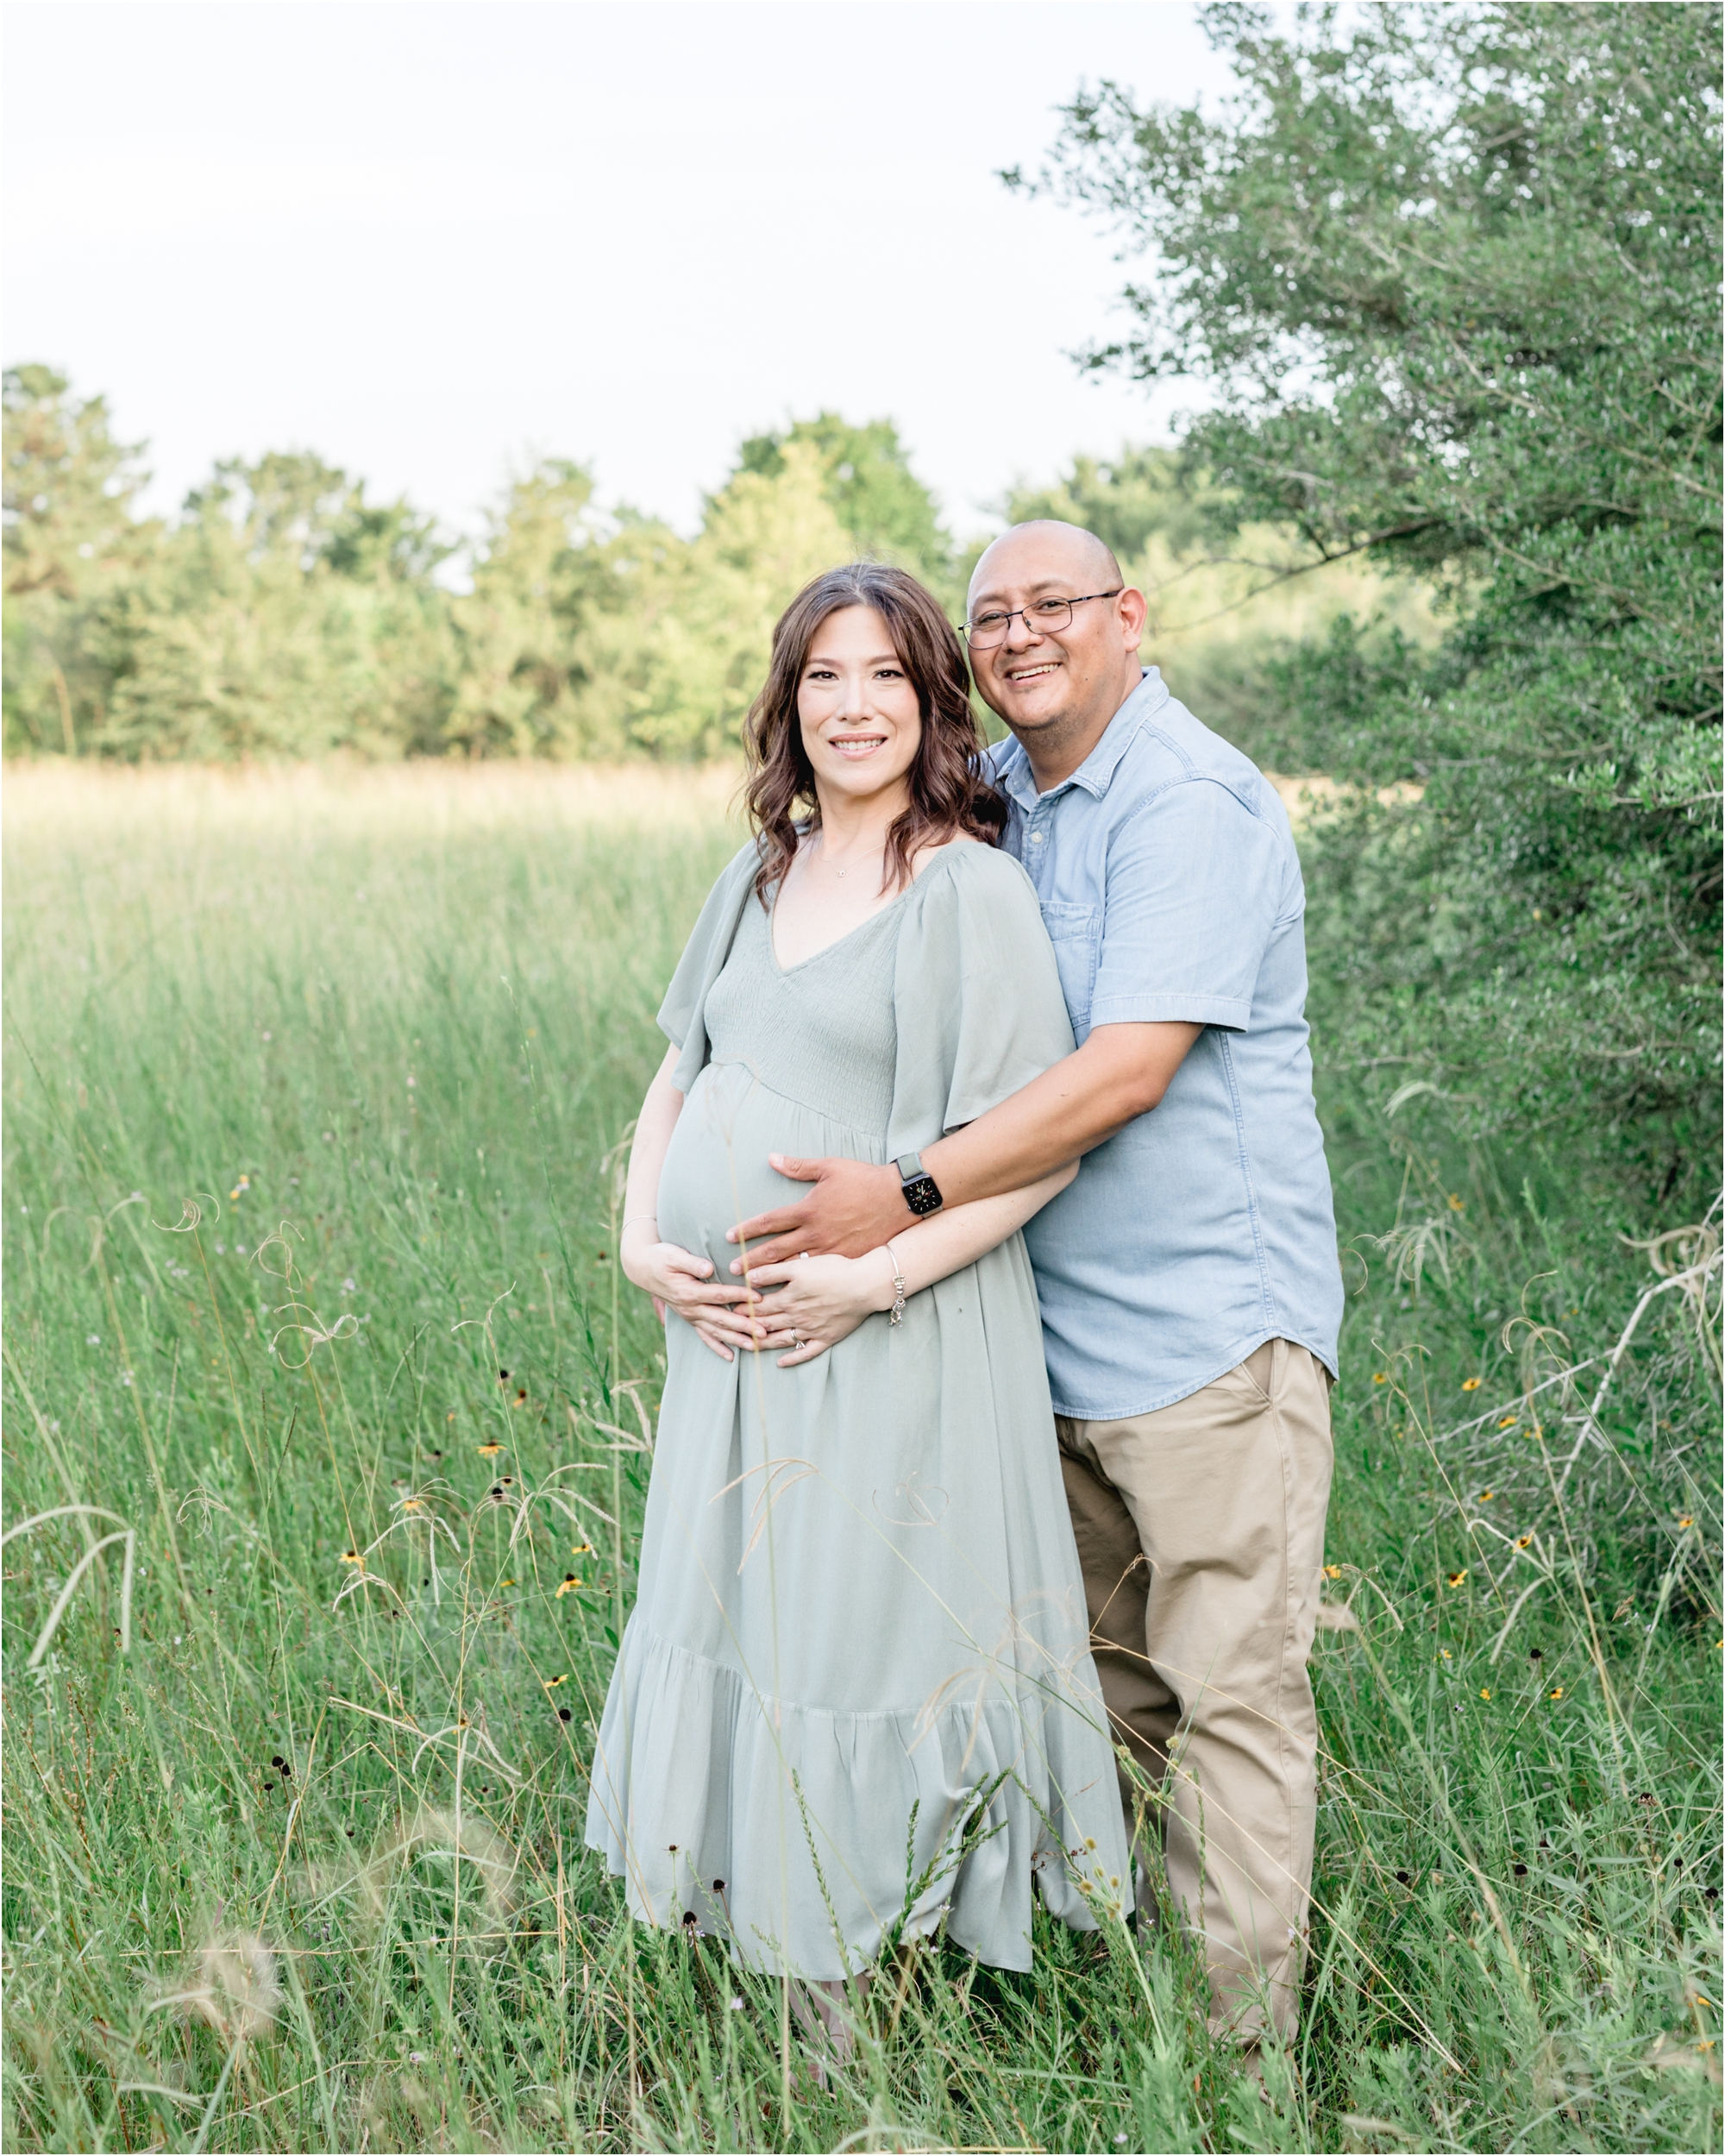 Mom and Dad smiling at camera during maternity photoshoot in Houston field. Photo by Lifetime of Clicks Photography.